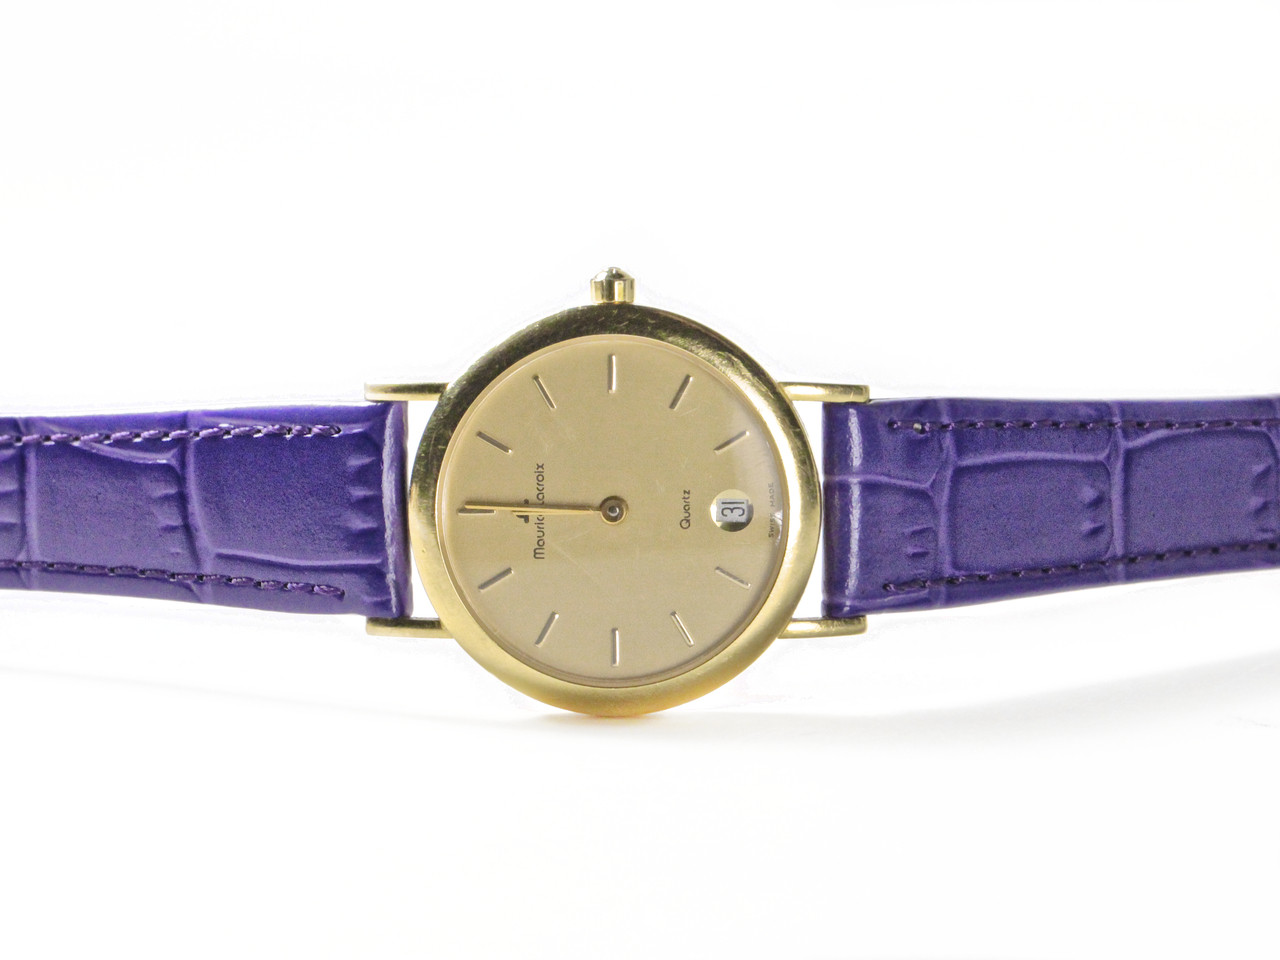 Vintage Maurice Lacroix Watch - Ladies 18K Yellow Gold 85634 - www.Legendoftime.com - Chicago Watch Center